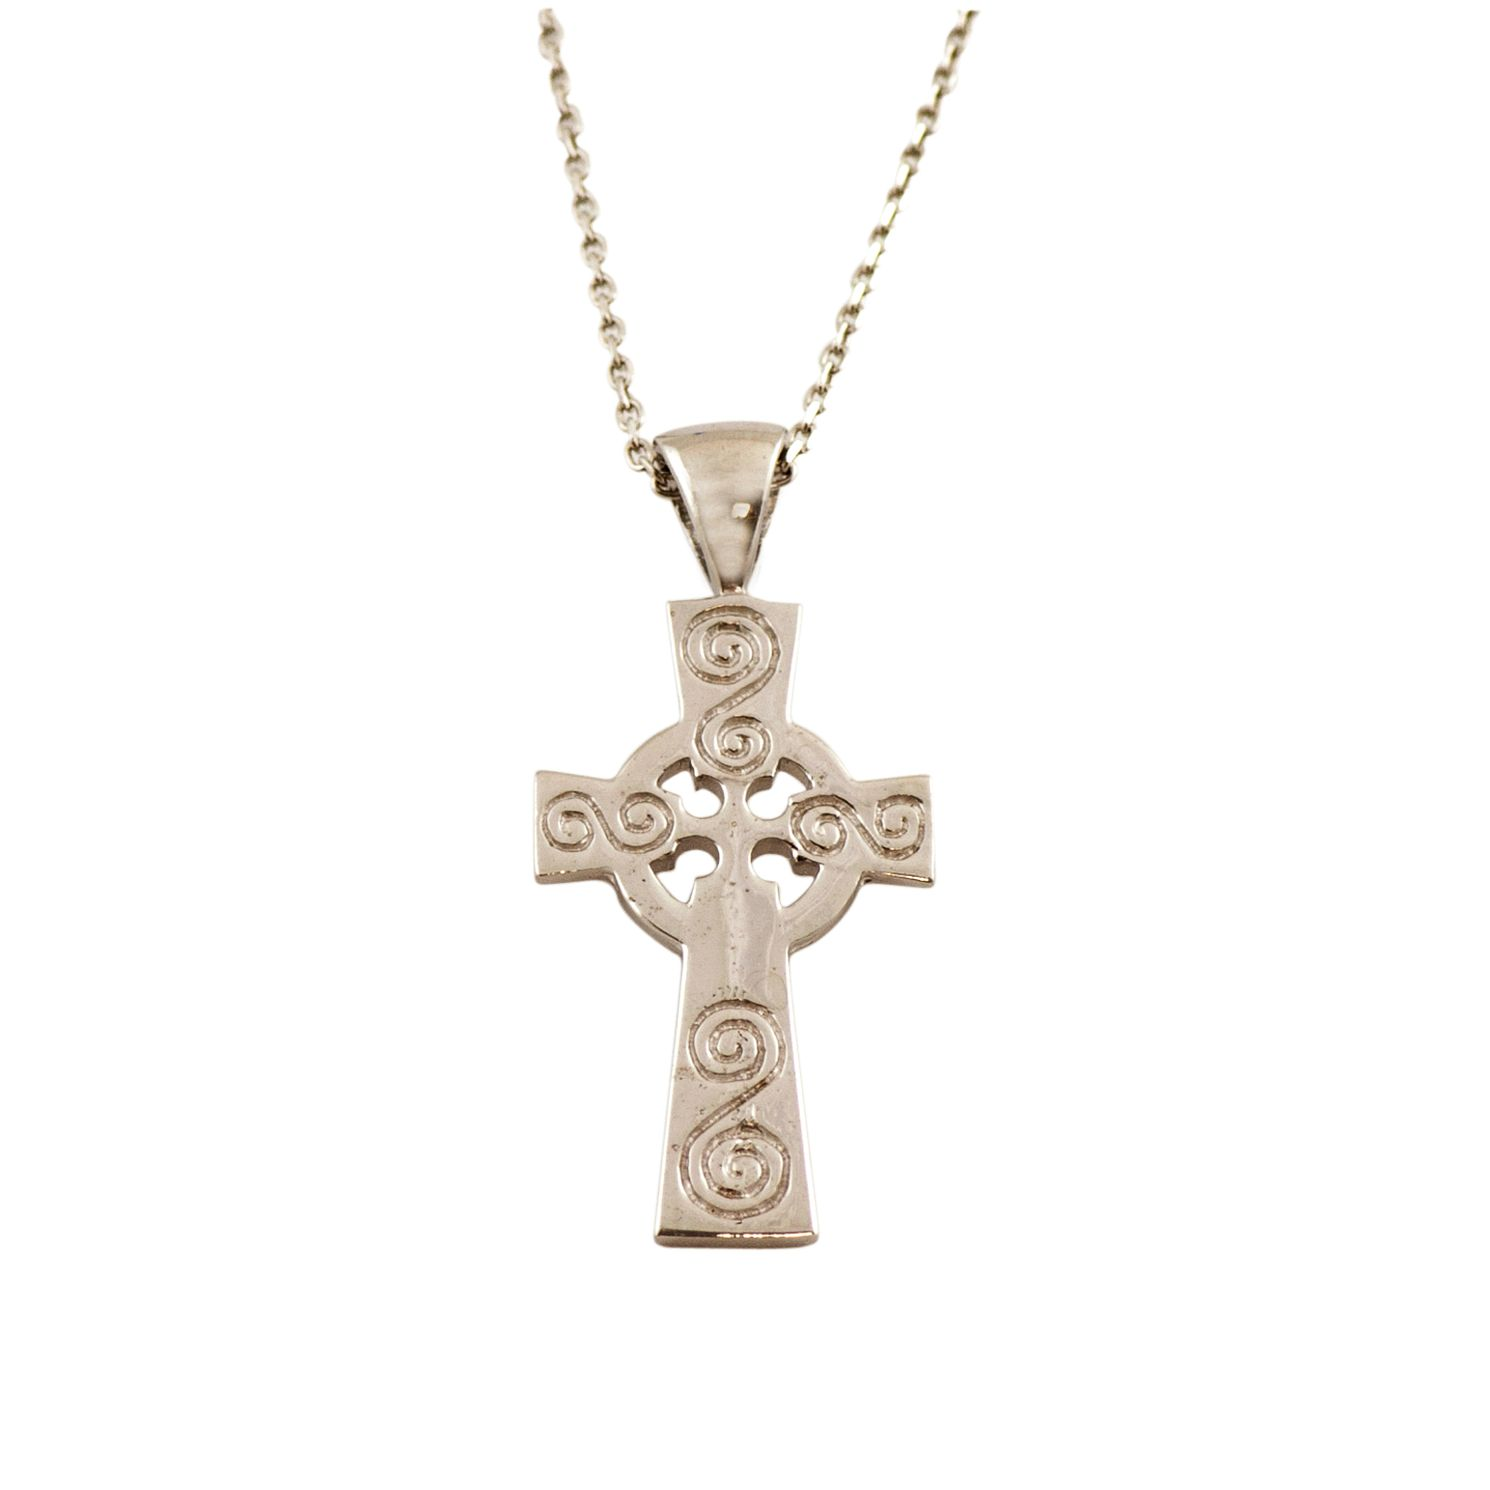 Cailin Sterling Silver Celtic Cross Pendant Necklace - Product number 9974768